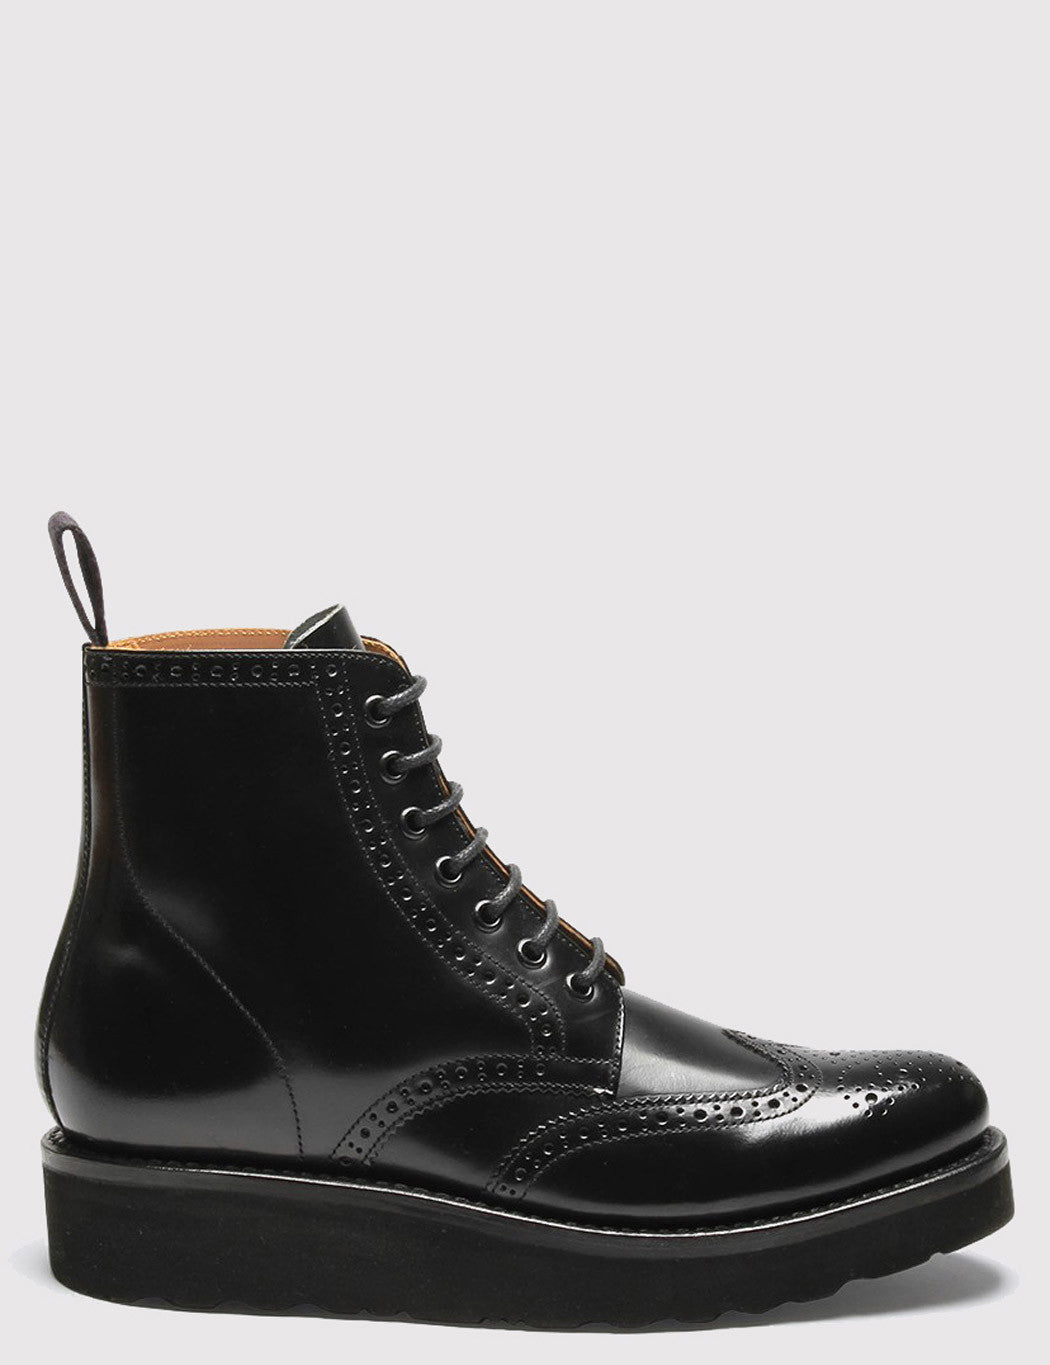 Womens Grenson Emma Brogue Boot - Black/Black